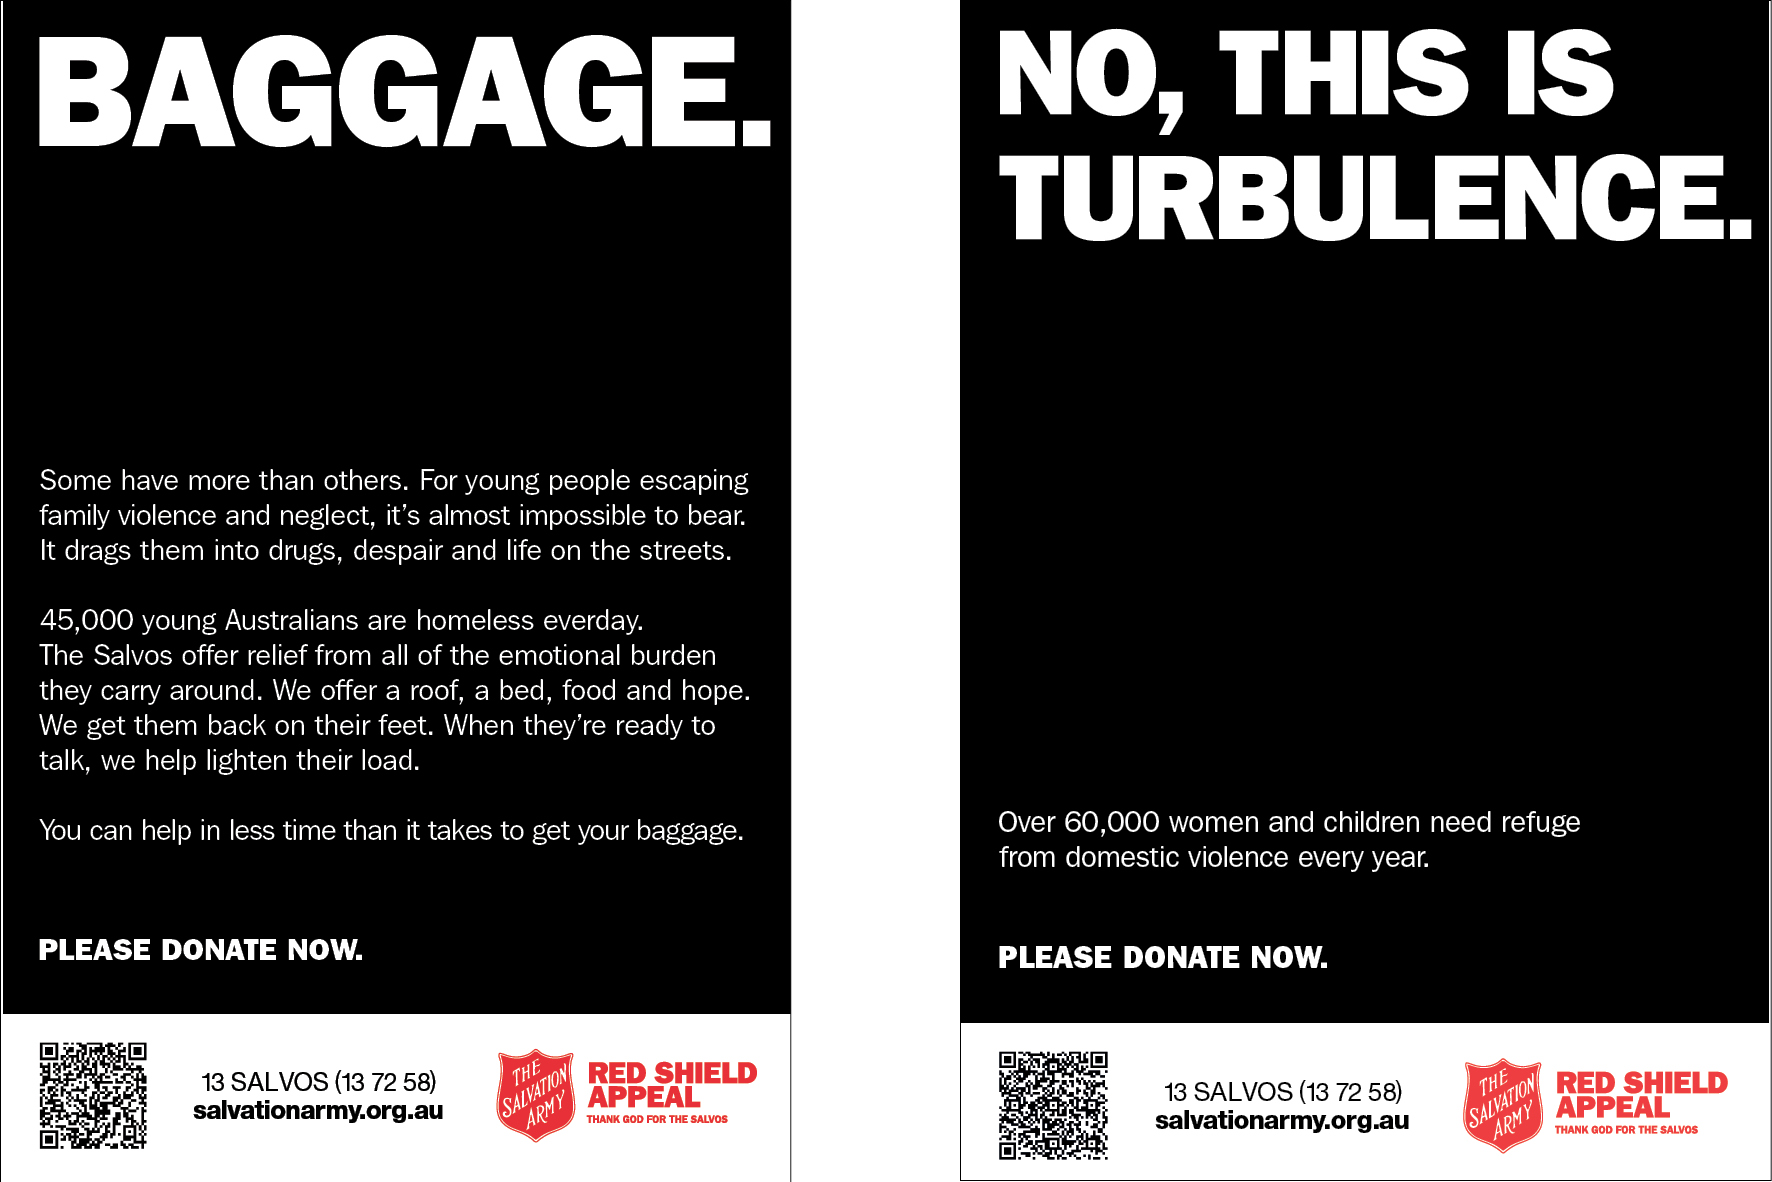 Salvation Army, Airport Campaign